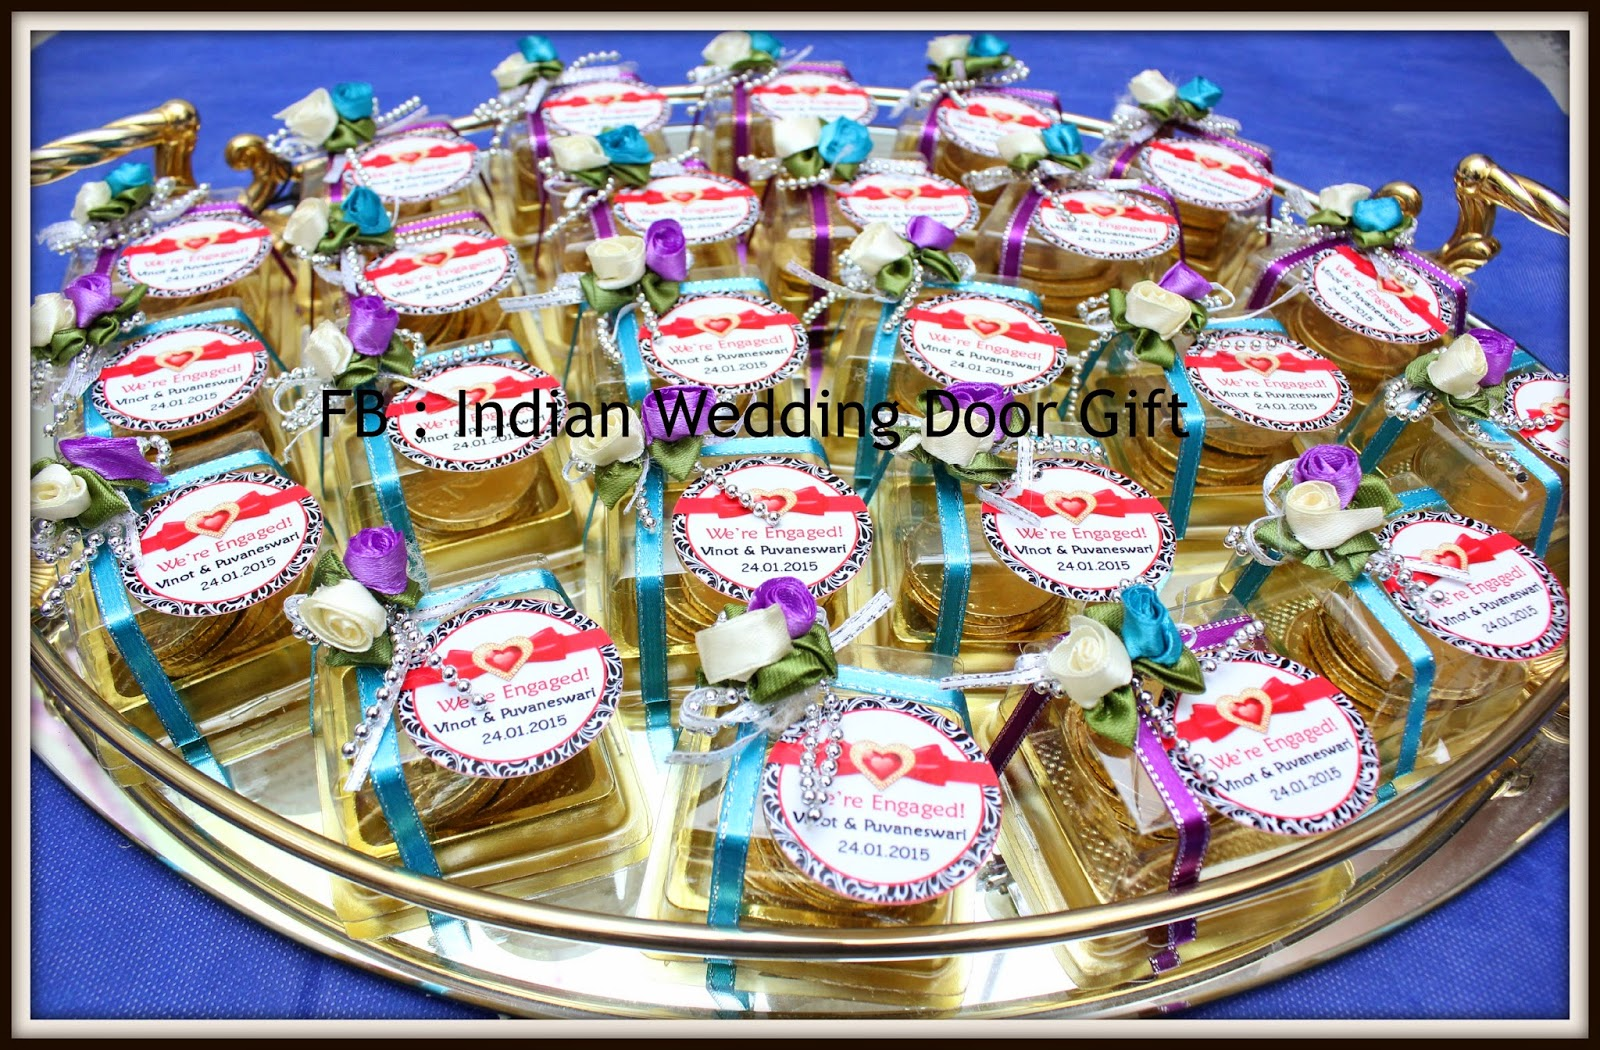 Wedding Gift Ideas India: Indian Wedding Door Gift: May 2015